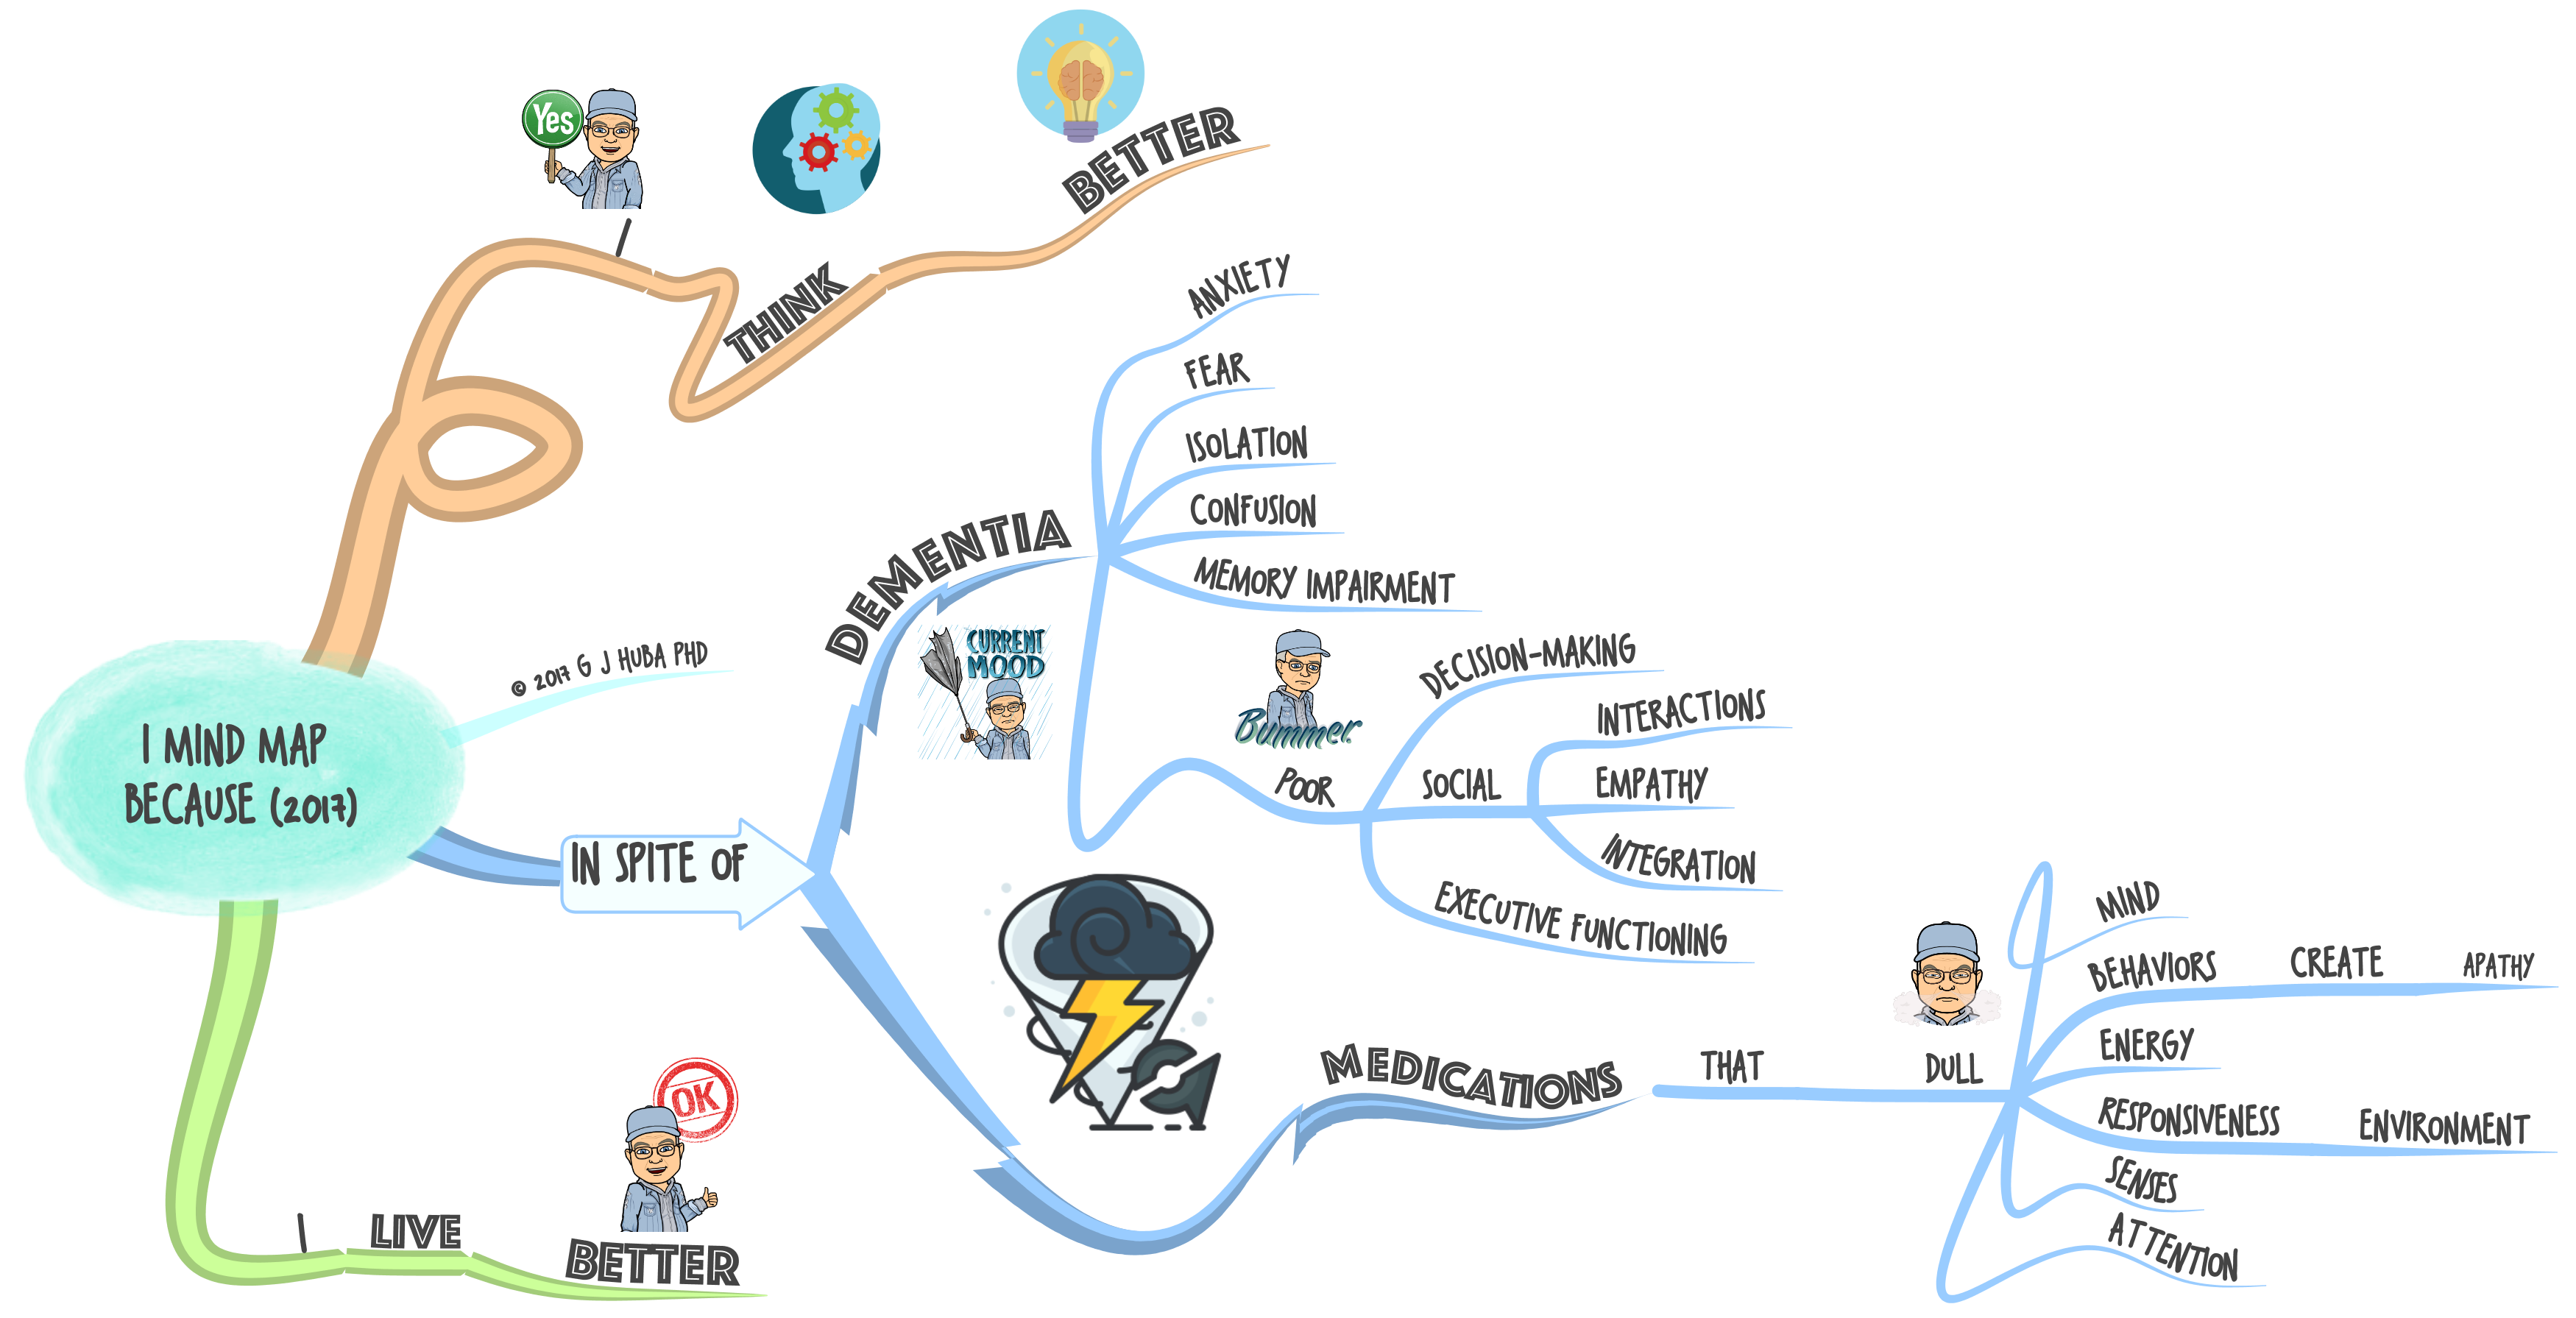 i-mind-map-because-2017